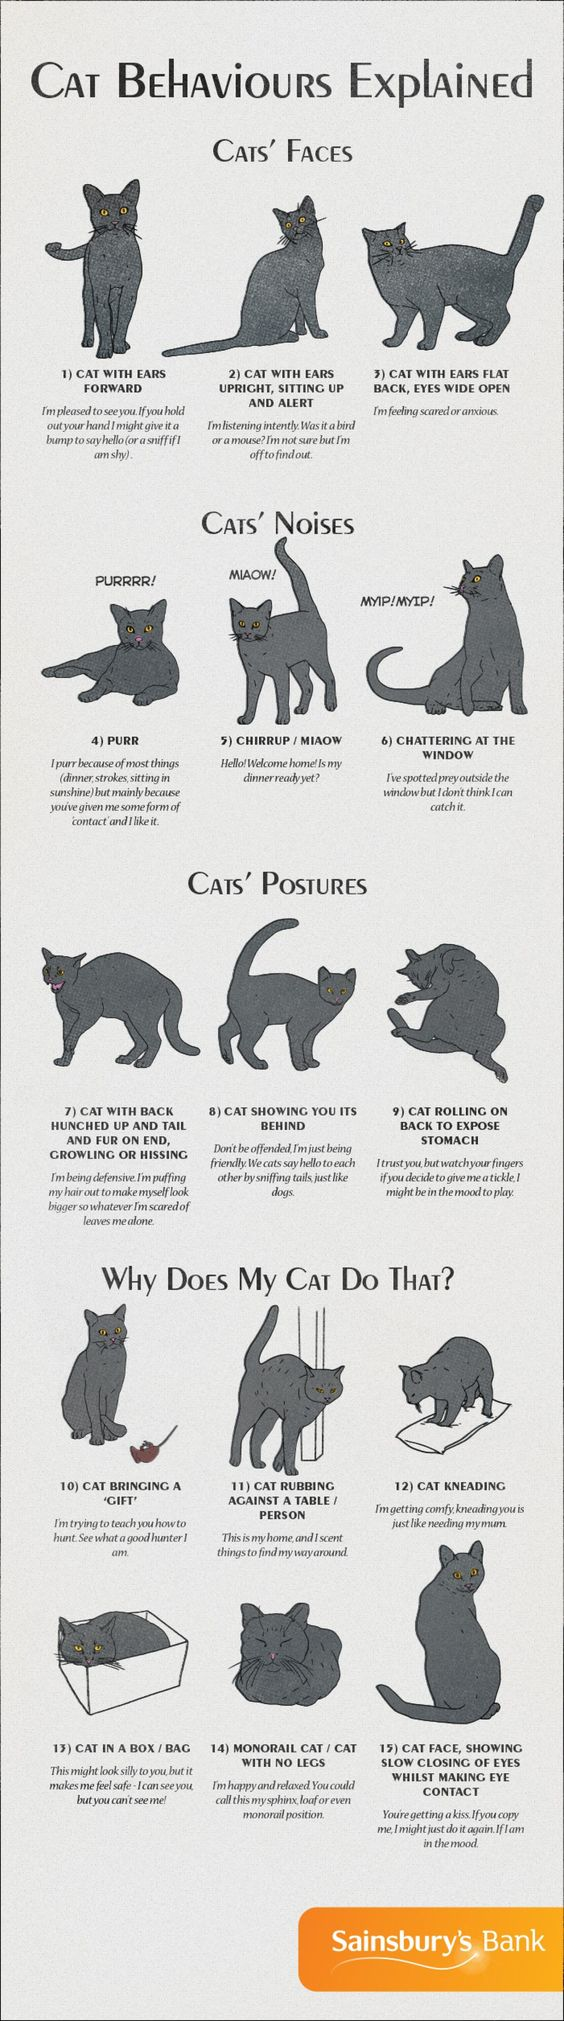 cat body language // if you just listen to them, they wont have need to scratch or bite you to communicate their dipleasure: